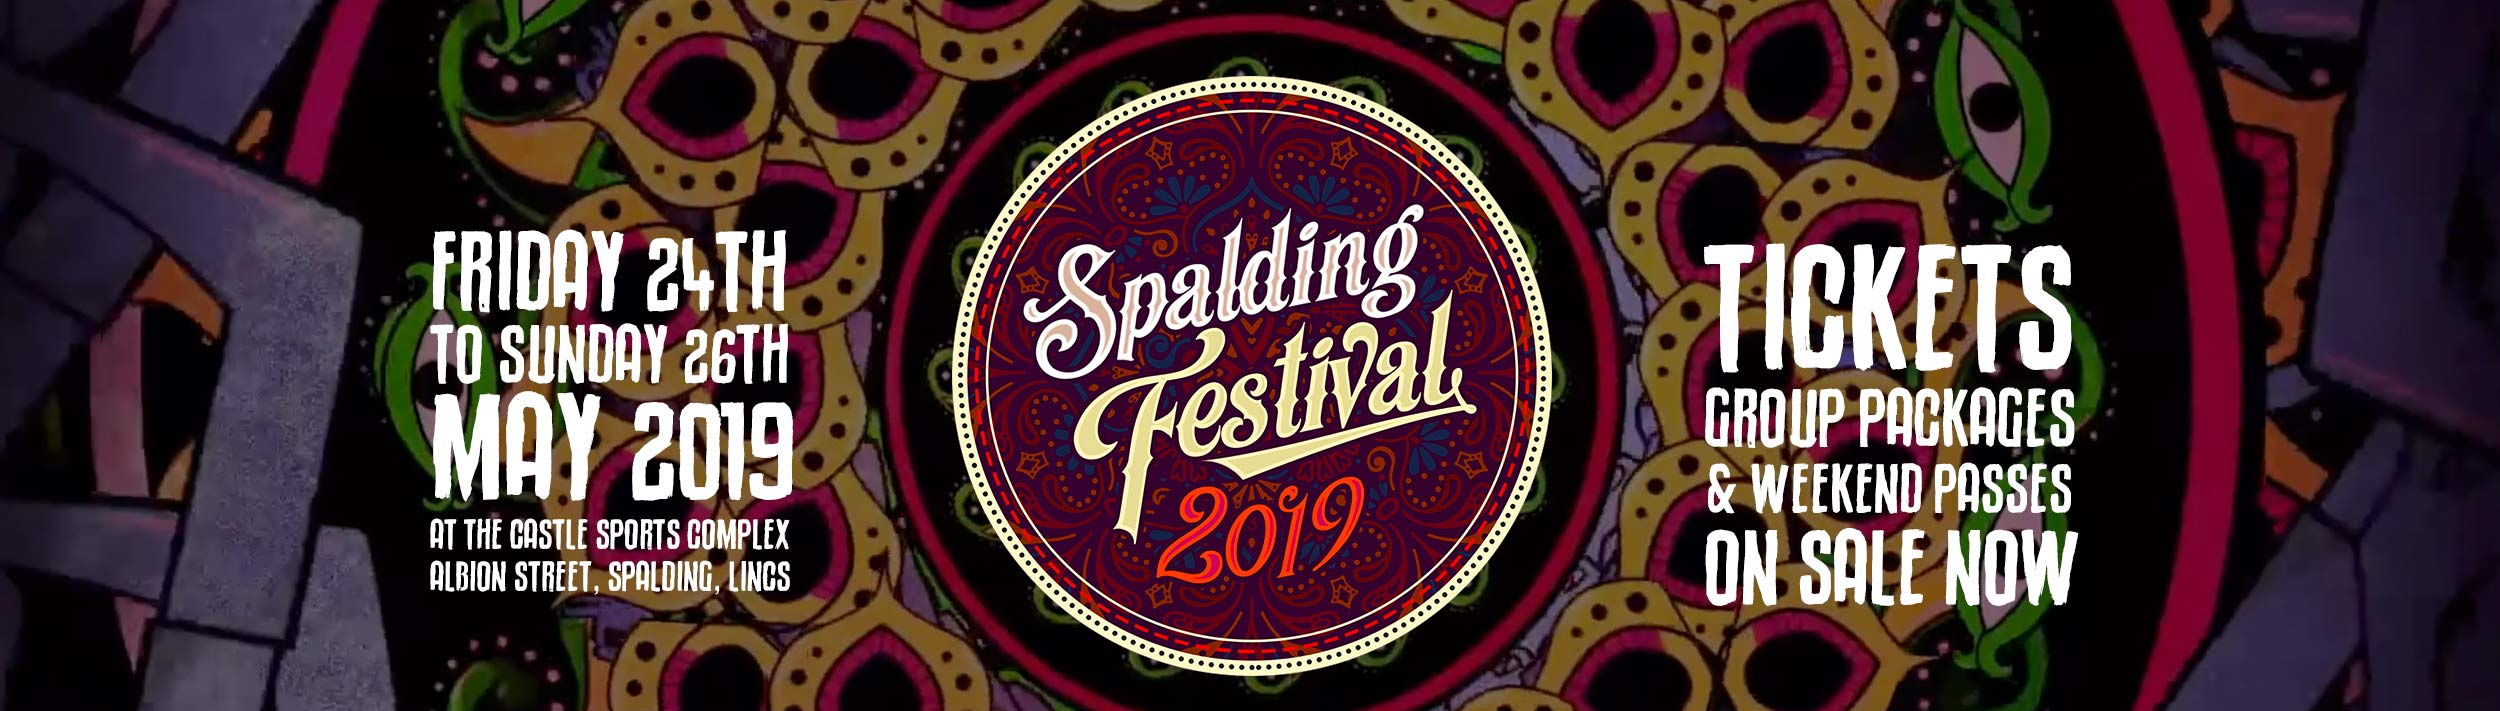 Spalding Festival 2019 - 24th 26th May 2019. Tickets on Sale Now at spaldingfestival.co.uk